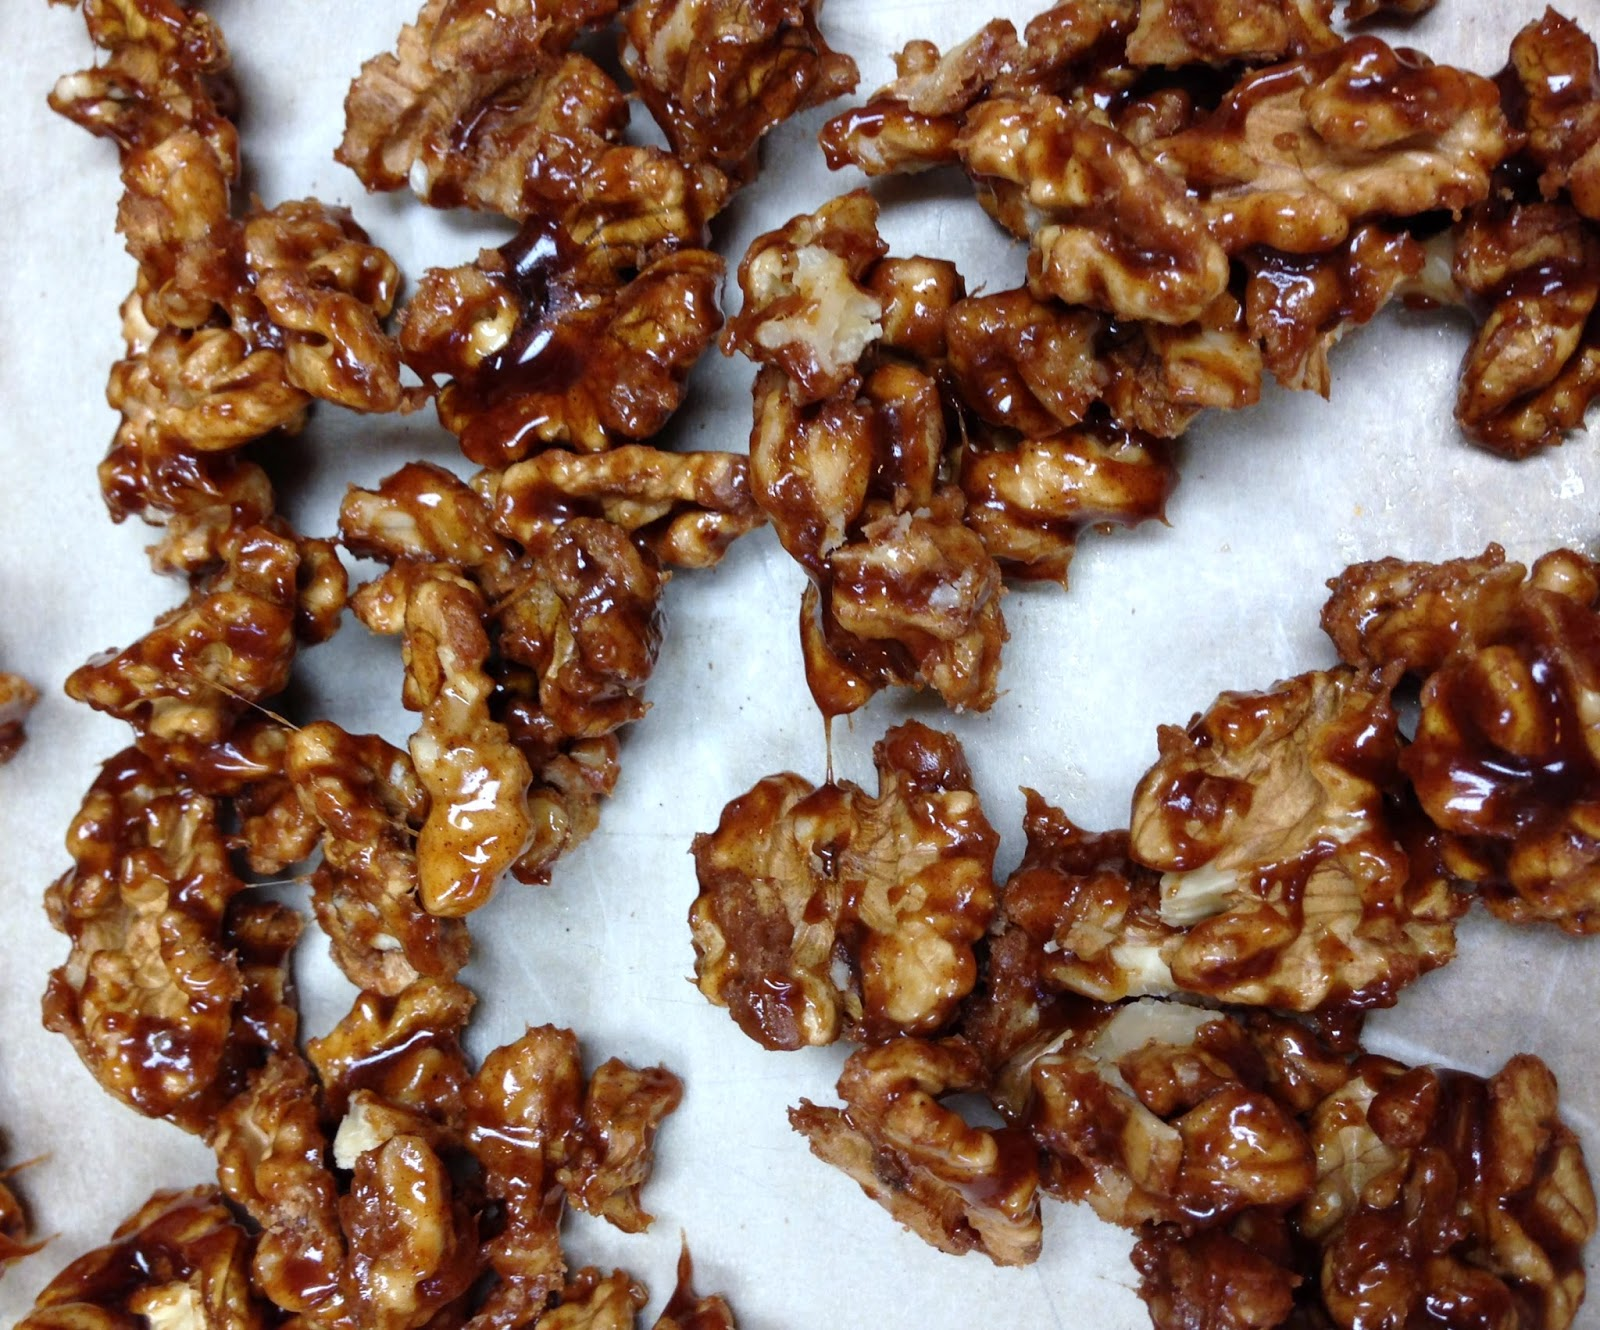 Flavors of the Umpqua: Maple-Glazed Walnuts and a Winter Salad